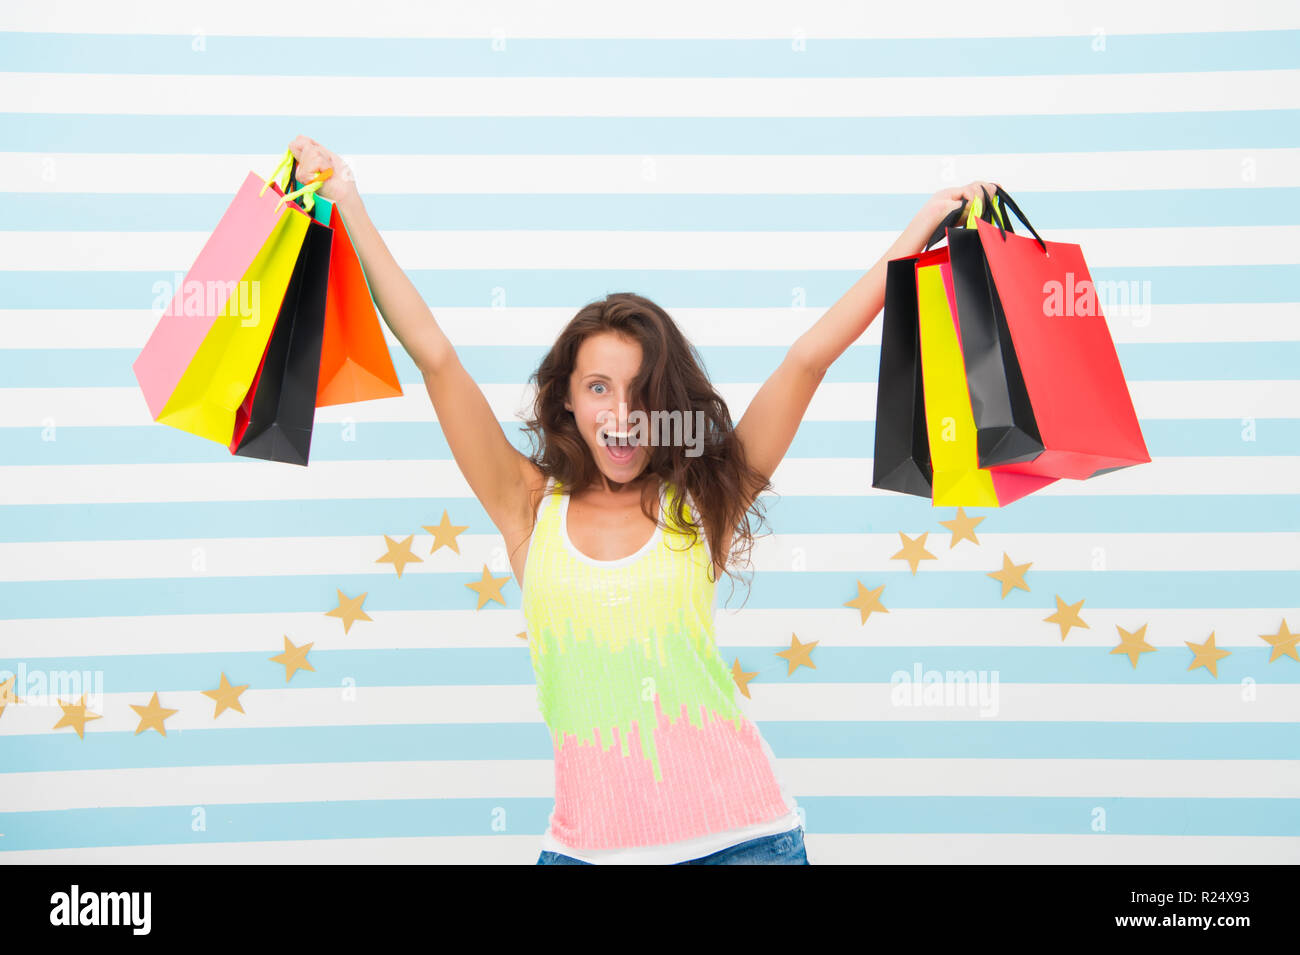 a good buy. happy girl show shopping bags. happy girl after day shopping with good buy. woman with purchase after sale. getting some retail therapy. holidays preparation of excited shopaholic - Stock Image